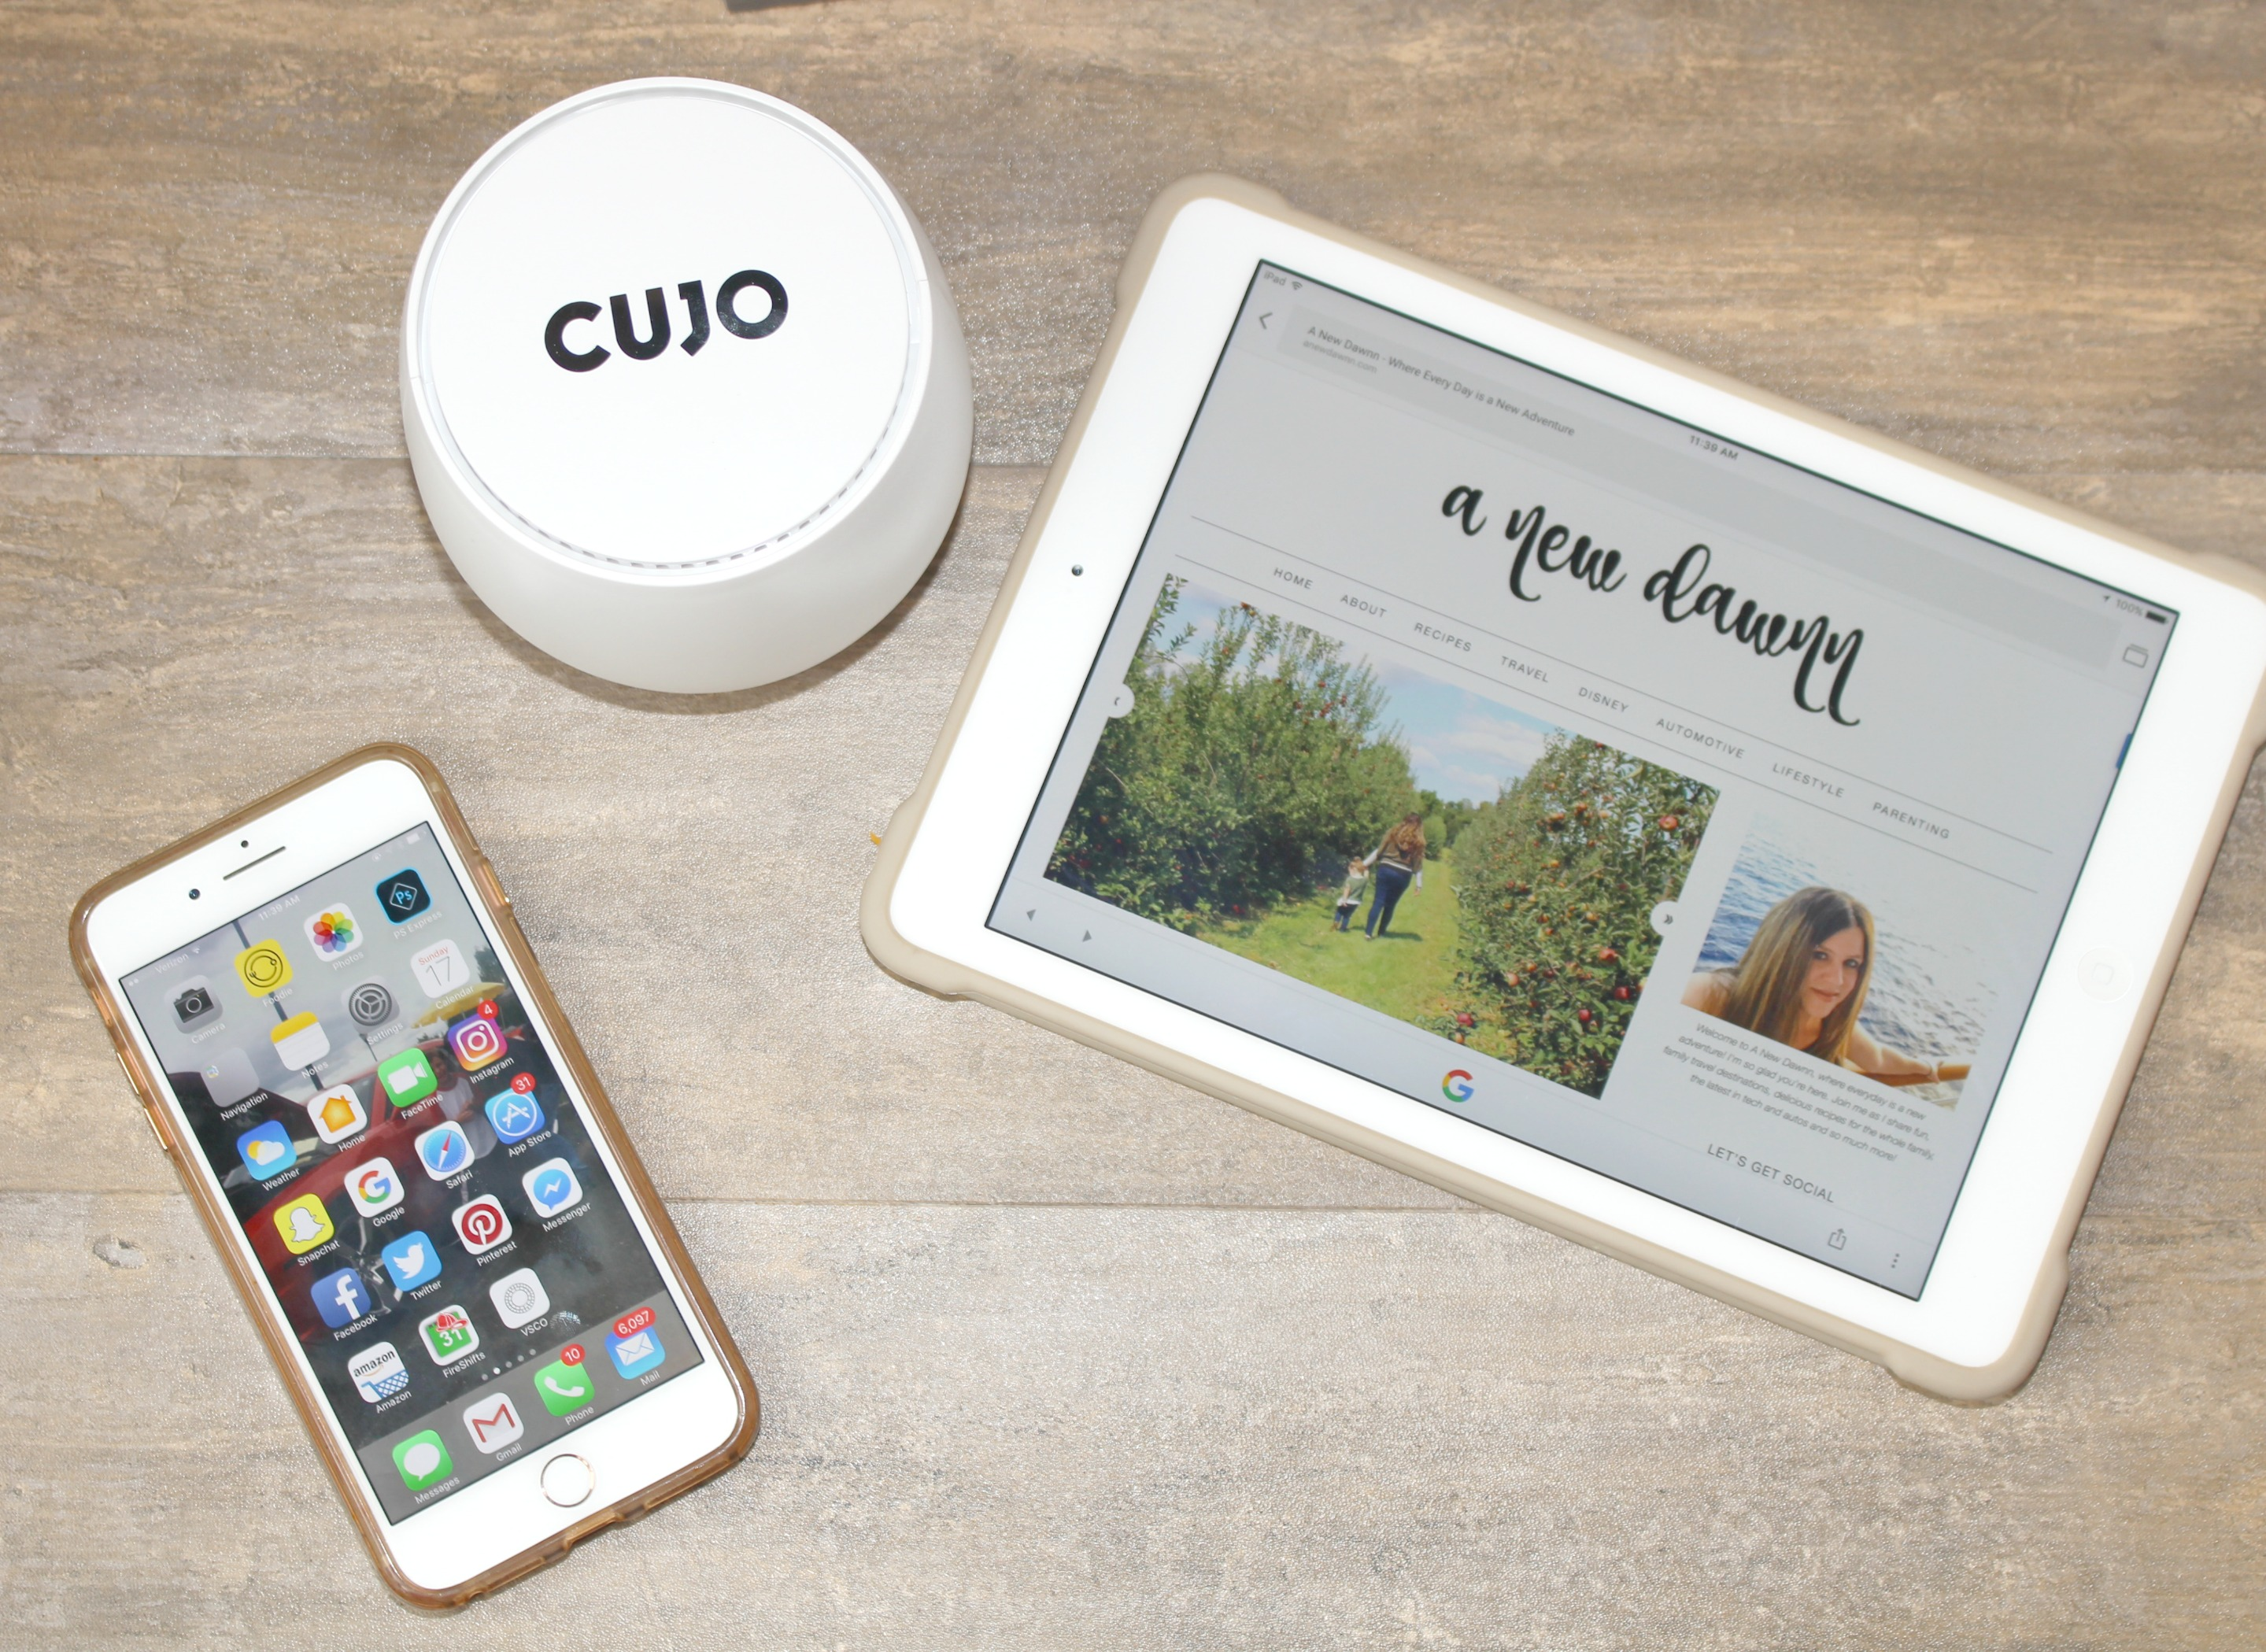 CUJO Smart Firewall